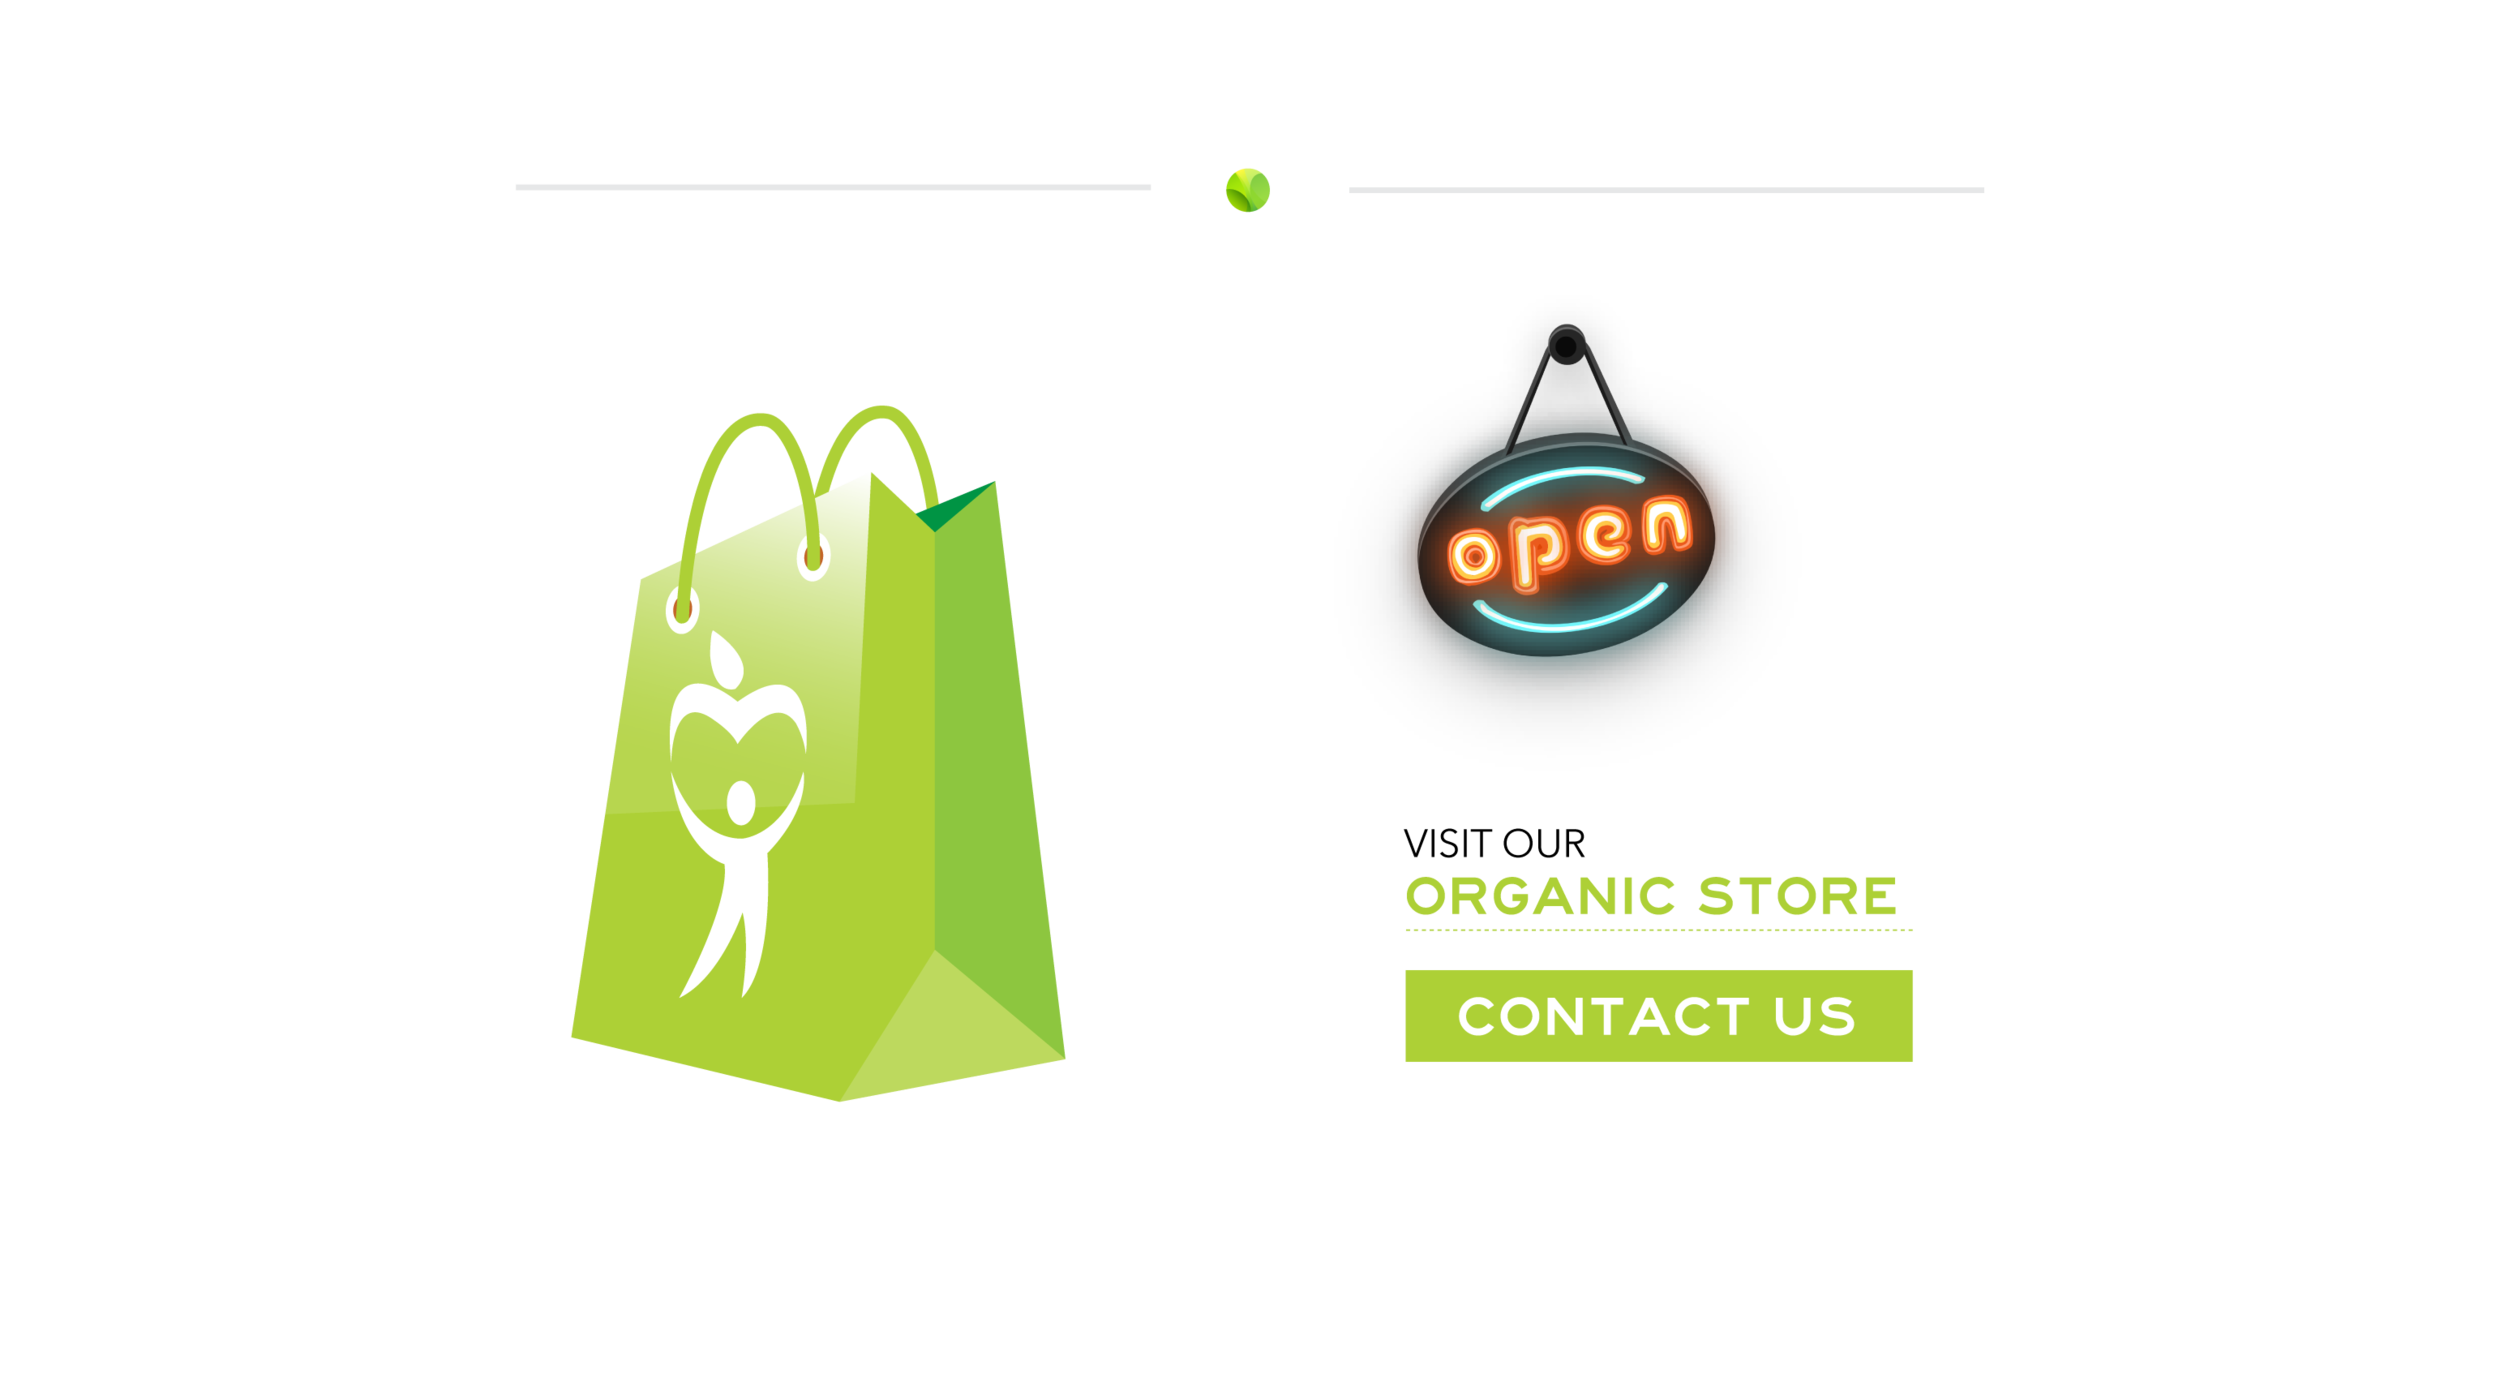 Home_OurOrganicStore-01.png